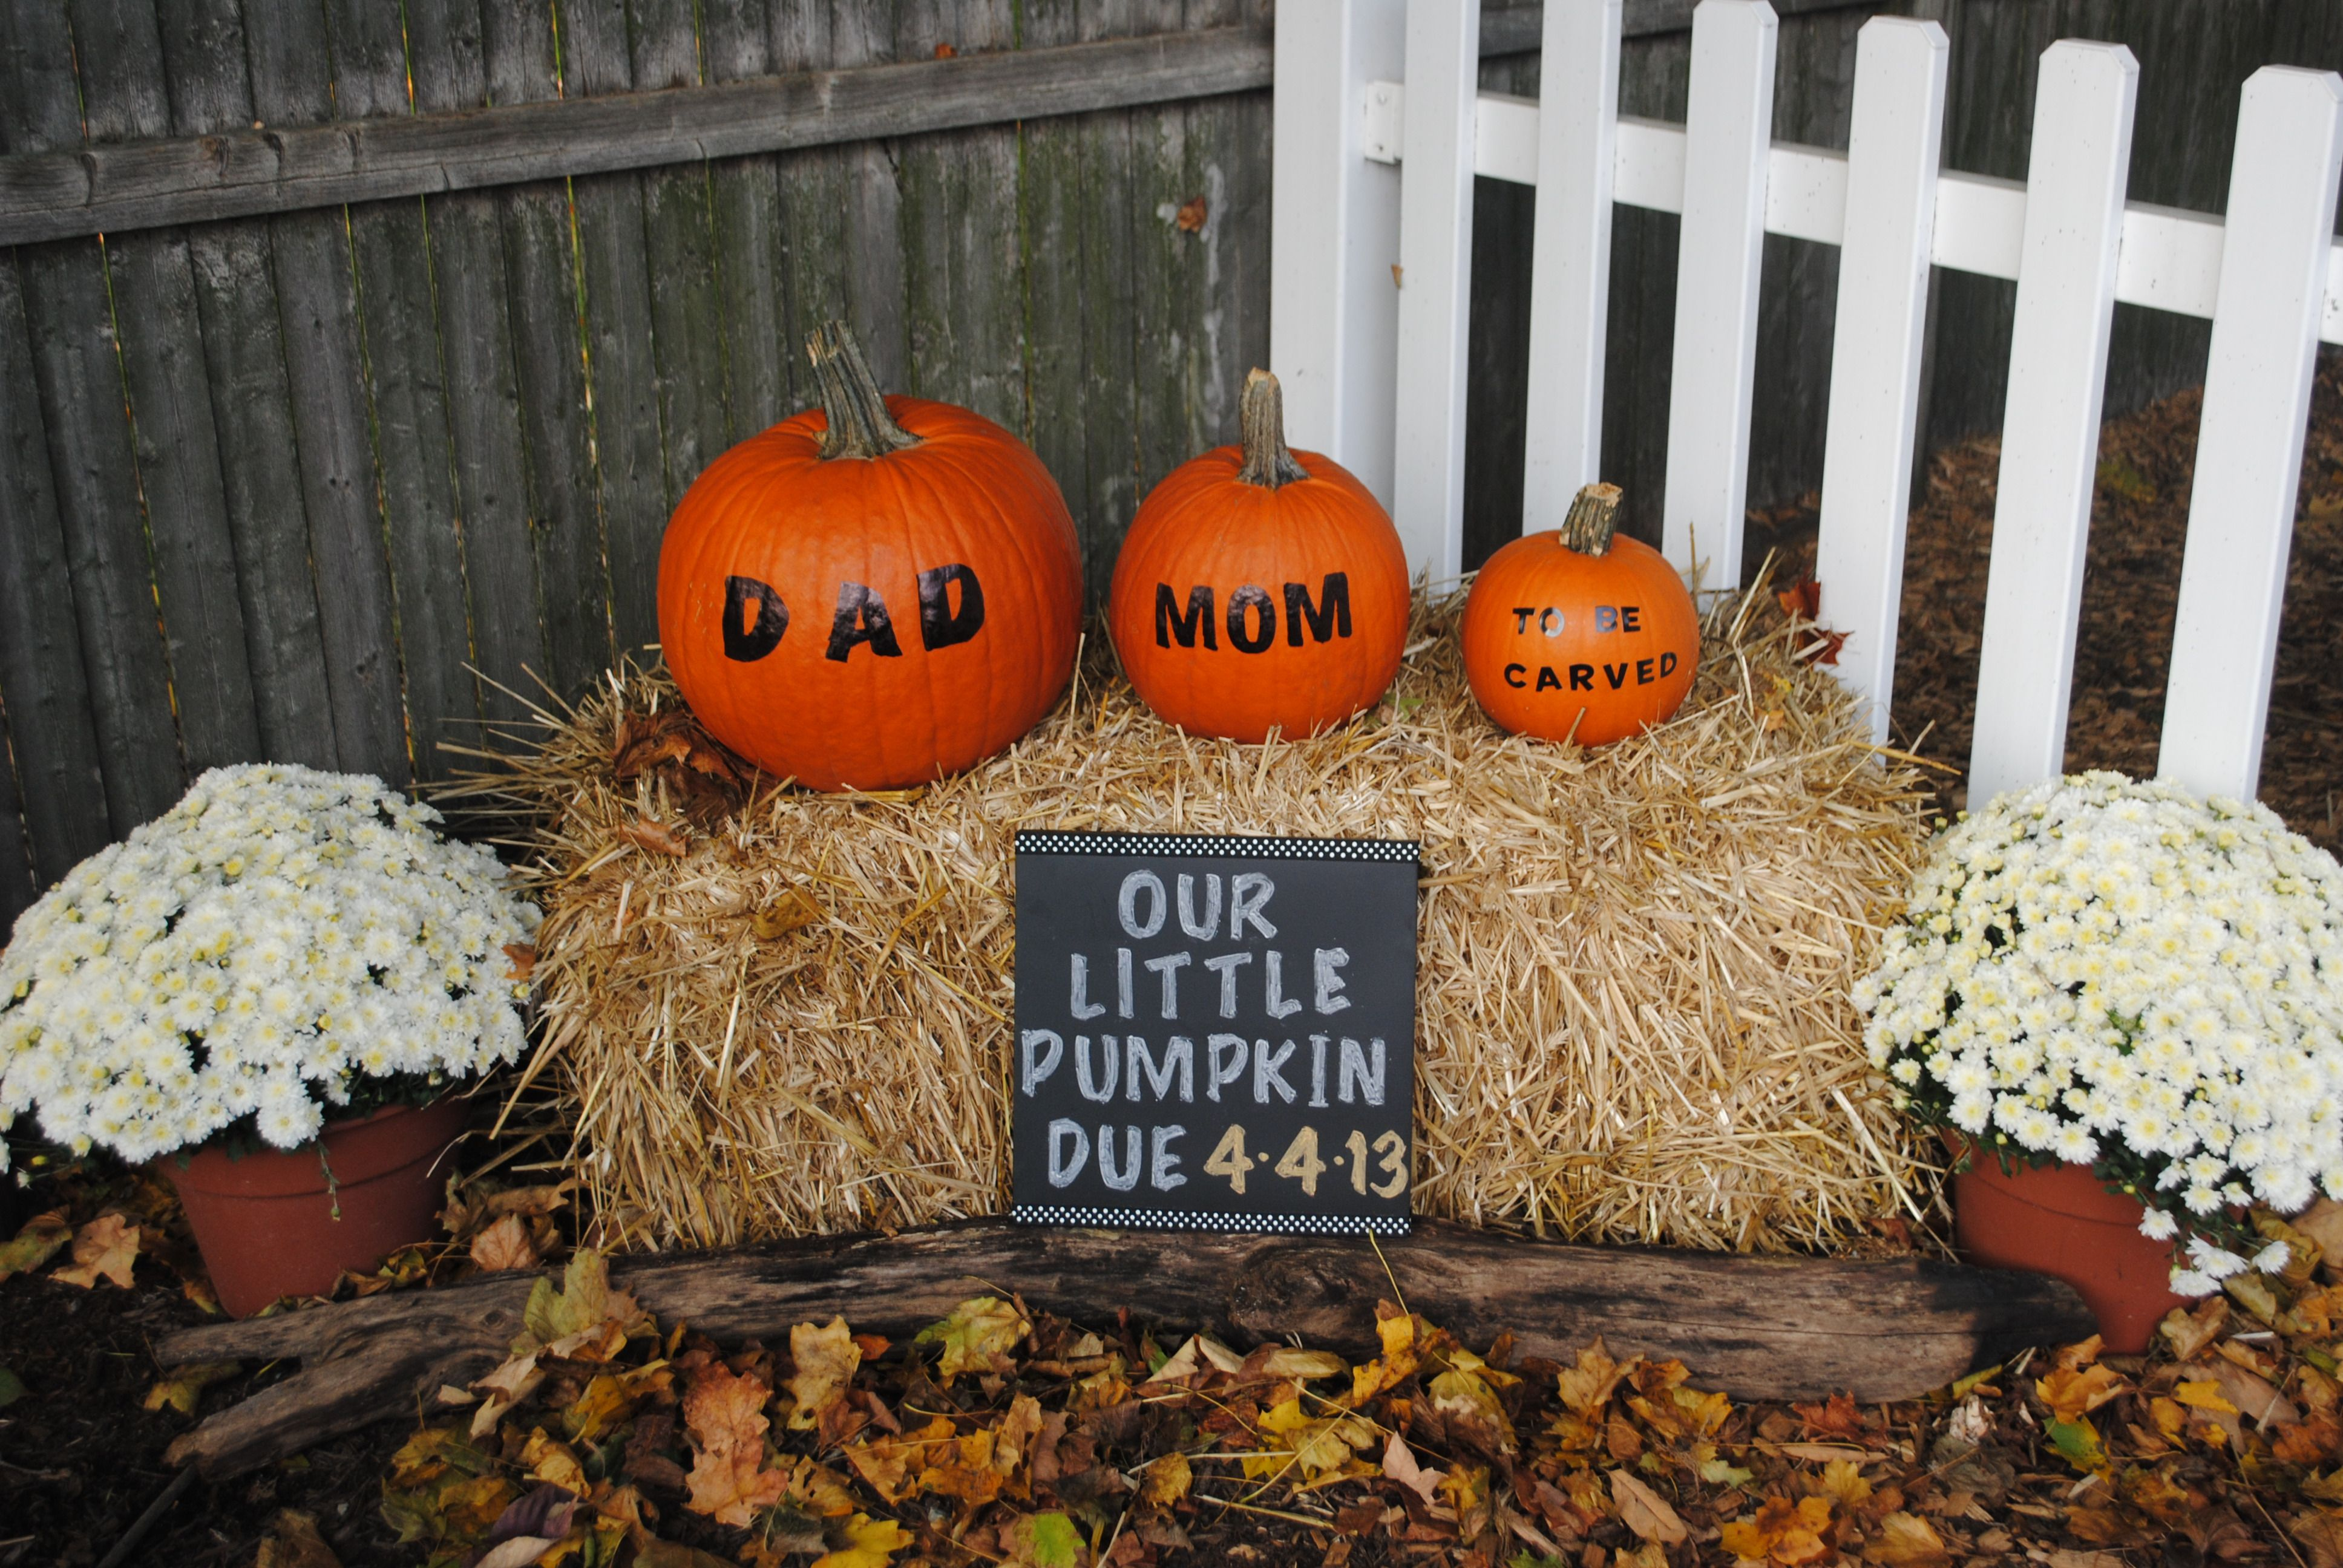 cool halloween pregnancy announcement idea check out stork 4d imaging studio to come in - Growing Halloween Pumpkins